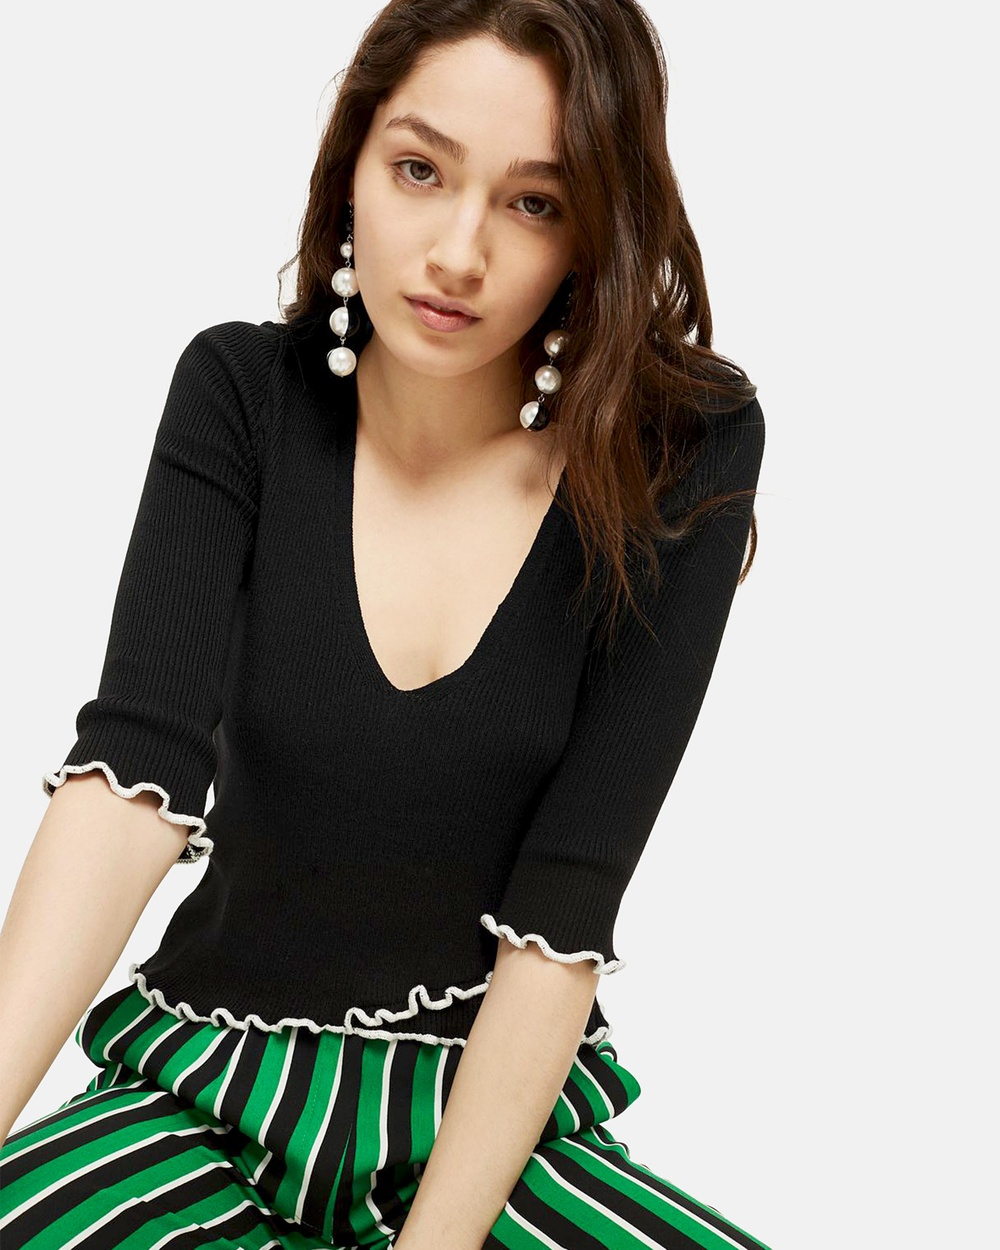 TOPSHOP Wrap Front Top Cropped tops Black Wrap Front Top